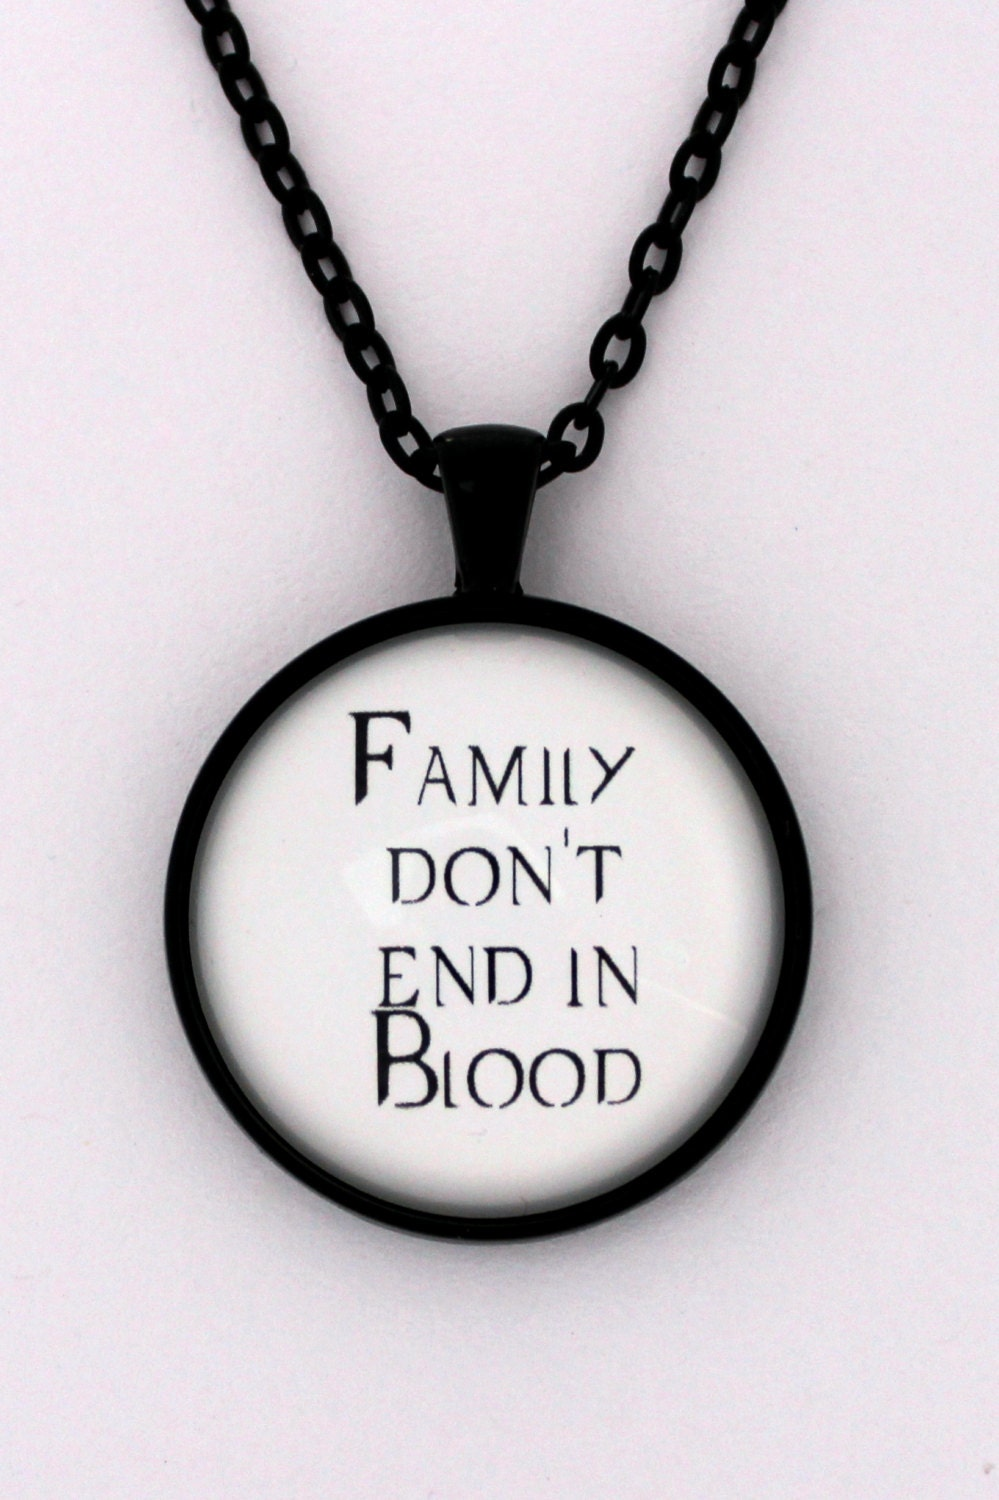 Supernatural Quotes Family Don T End With Blood: Family Don't End In Blood Supernatural Quote Dean Sam